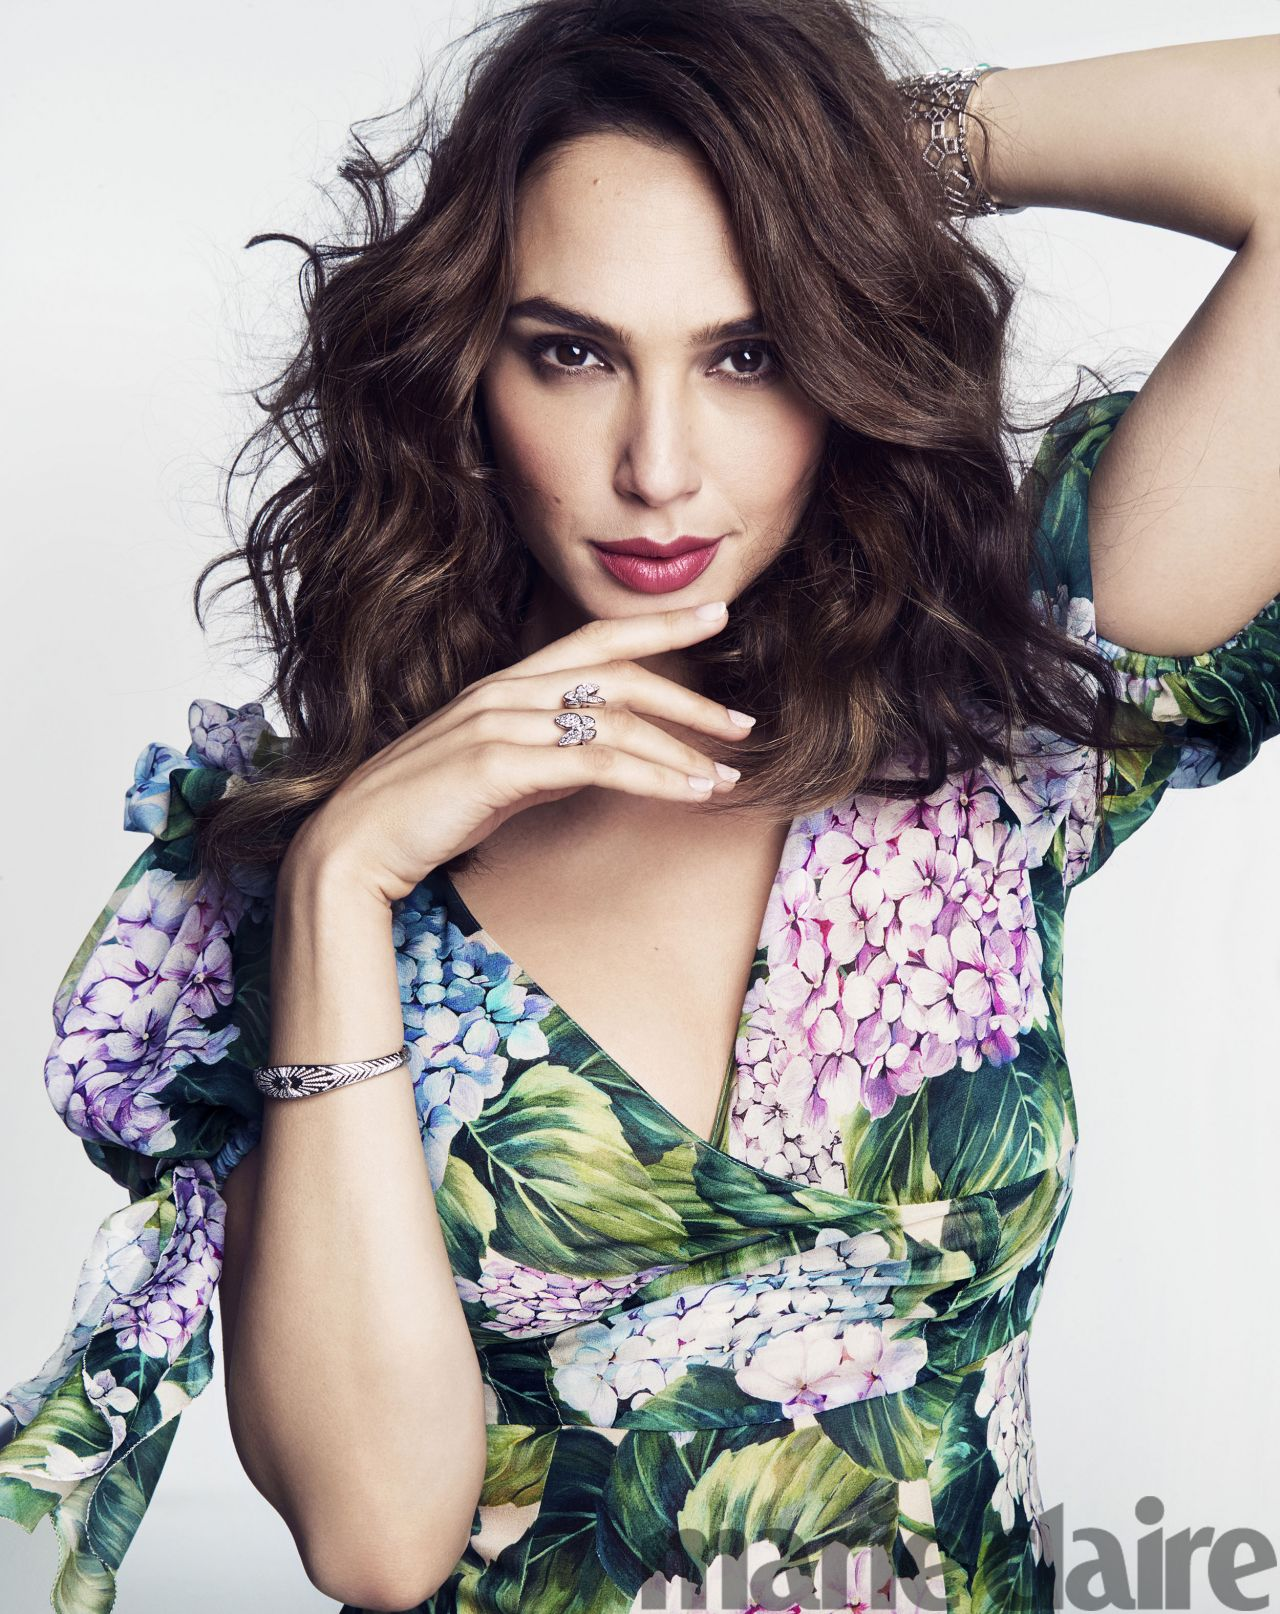 http://celebmafia.com/wp-content/uploads/2017/05/gal-gadot-marie-claire-magazine-us-june-2017-cover-and-photo-3.jpg